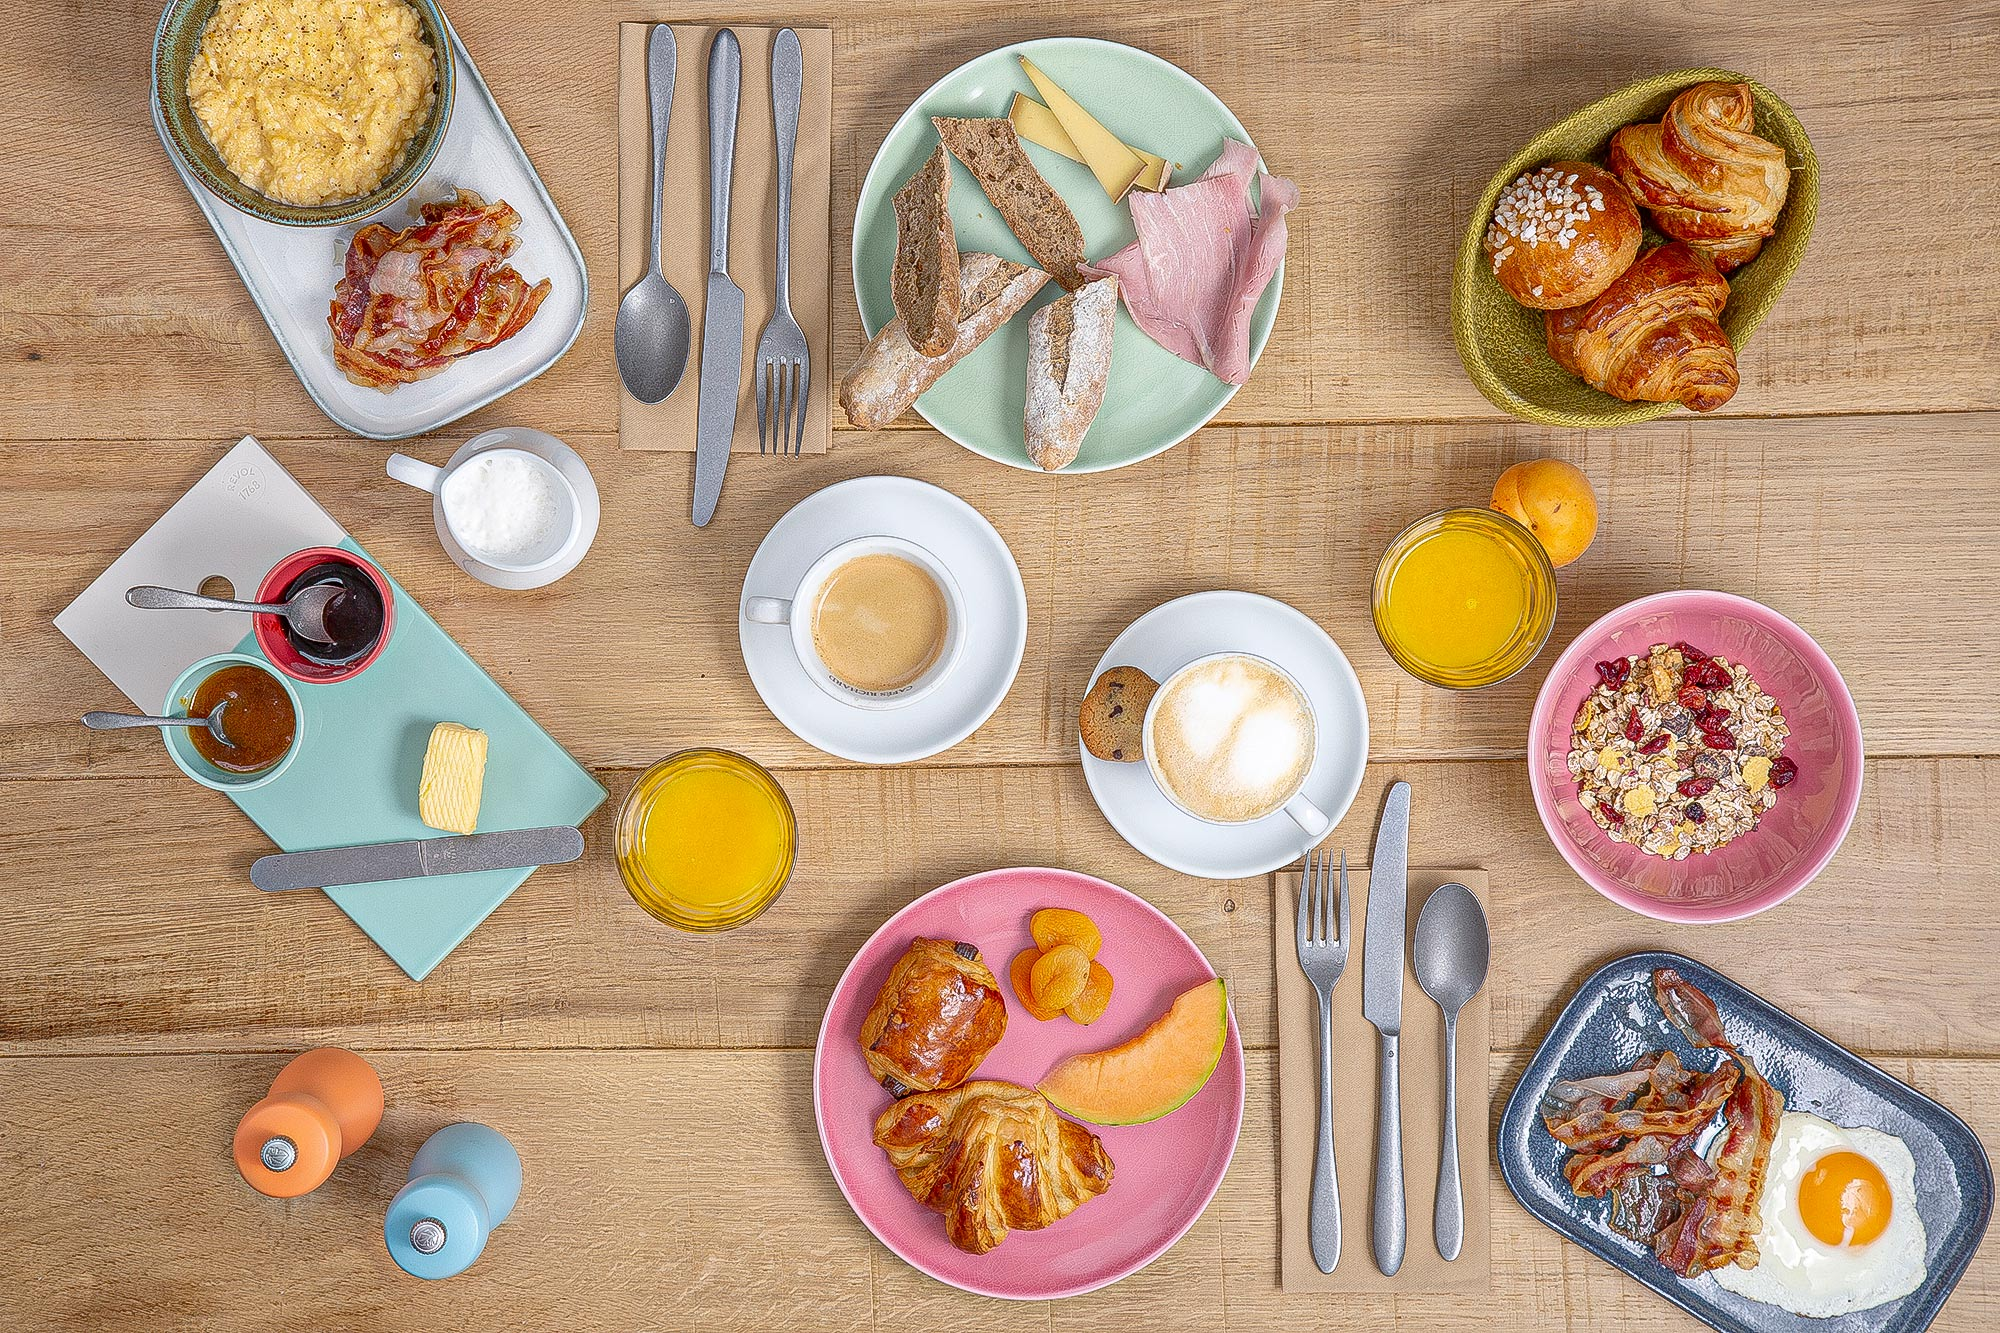 Breakfast Photography by Adrian Kilchherr; Hospitality Photographer Swiitzerland France Europe